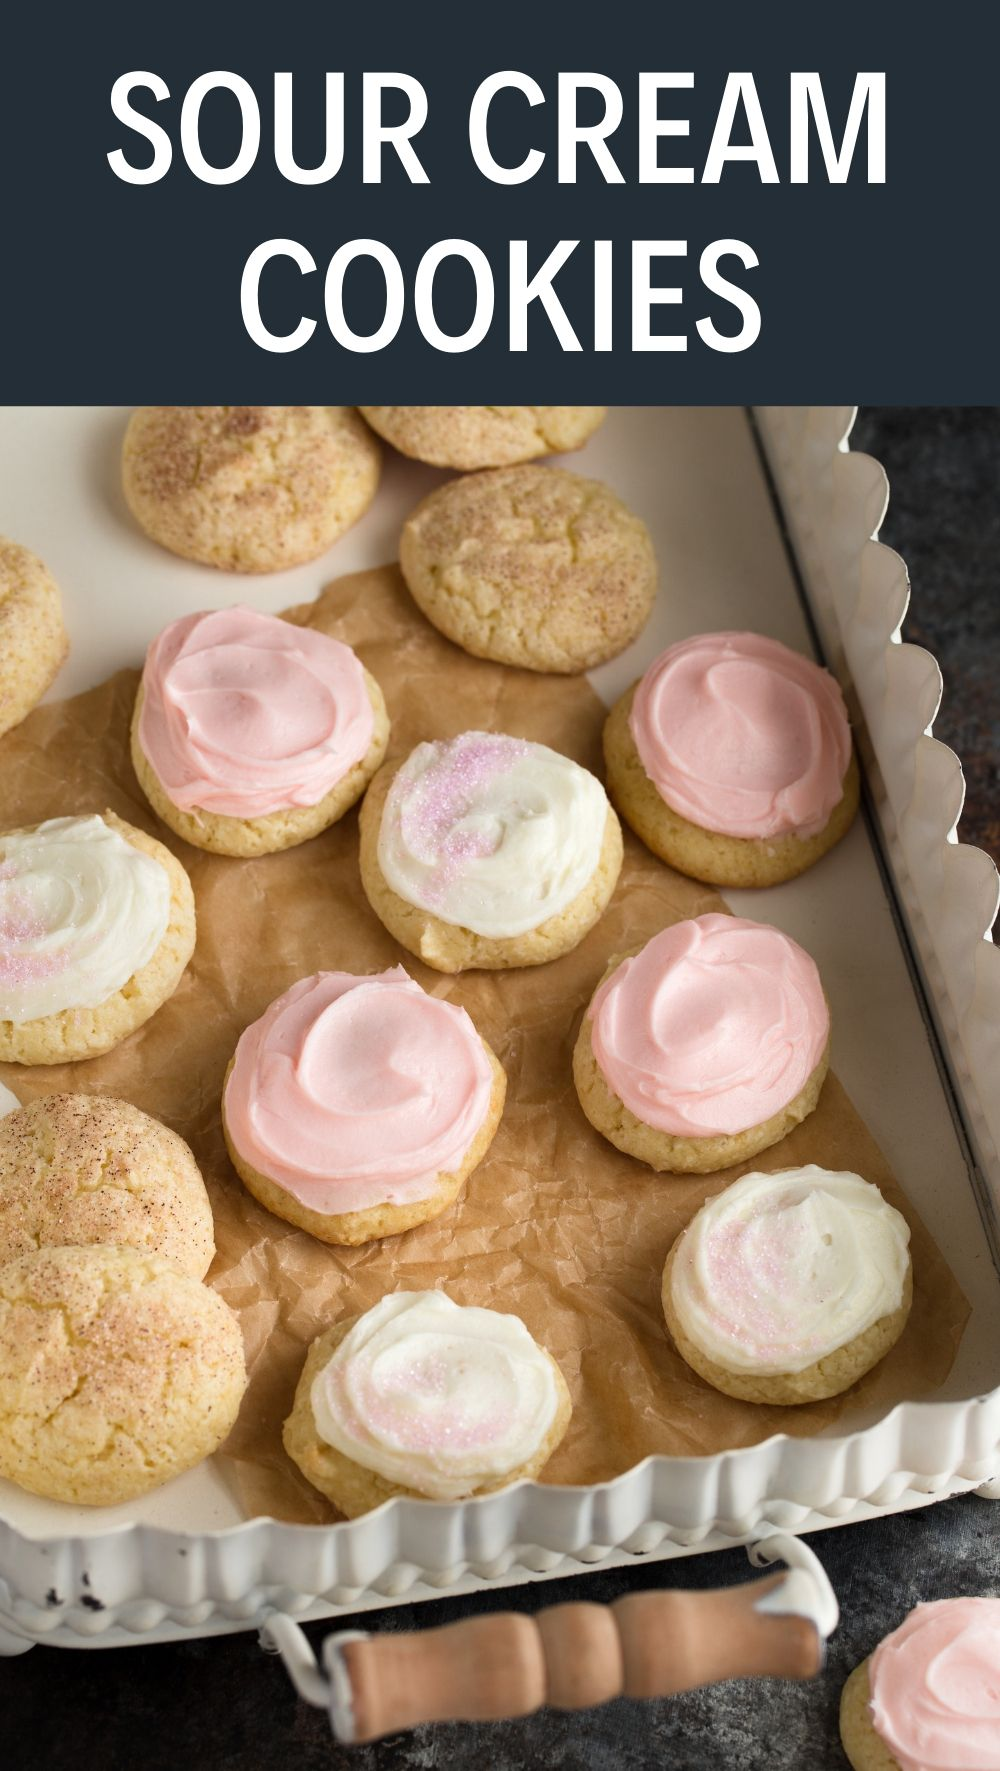 Old Fashioned Sour Cream Cookies Recipe Sour Cream Cookies Ginger Cookies Cookie Recipes Homemade